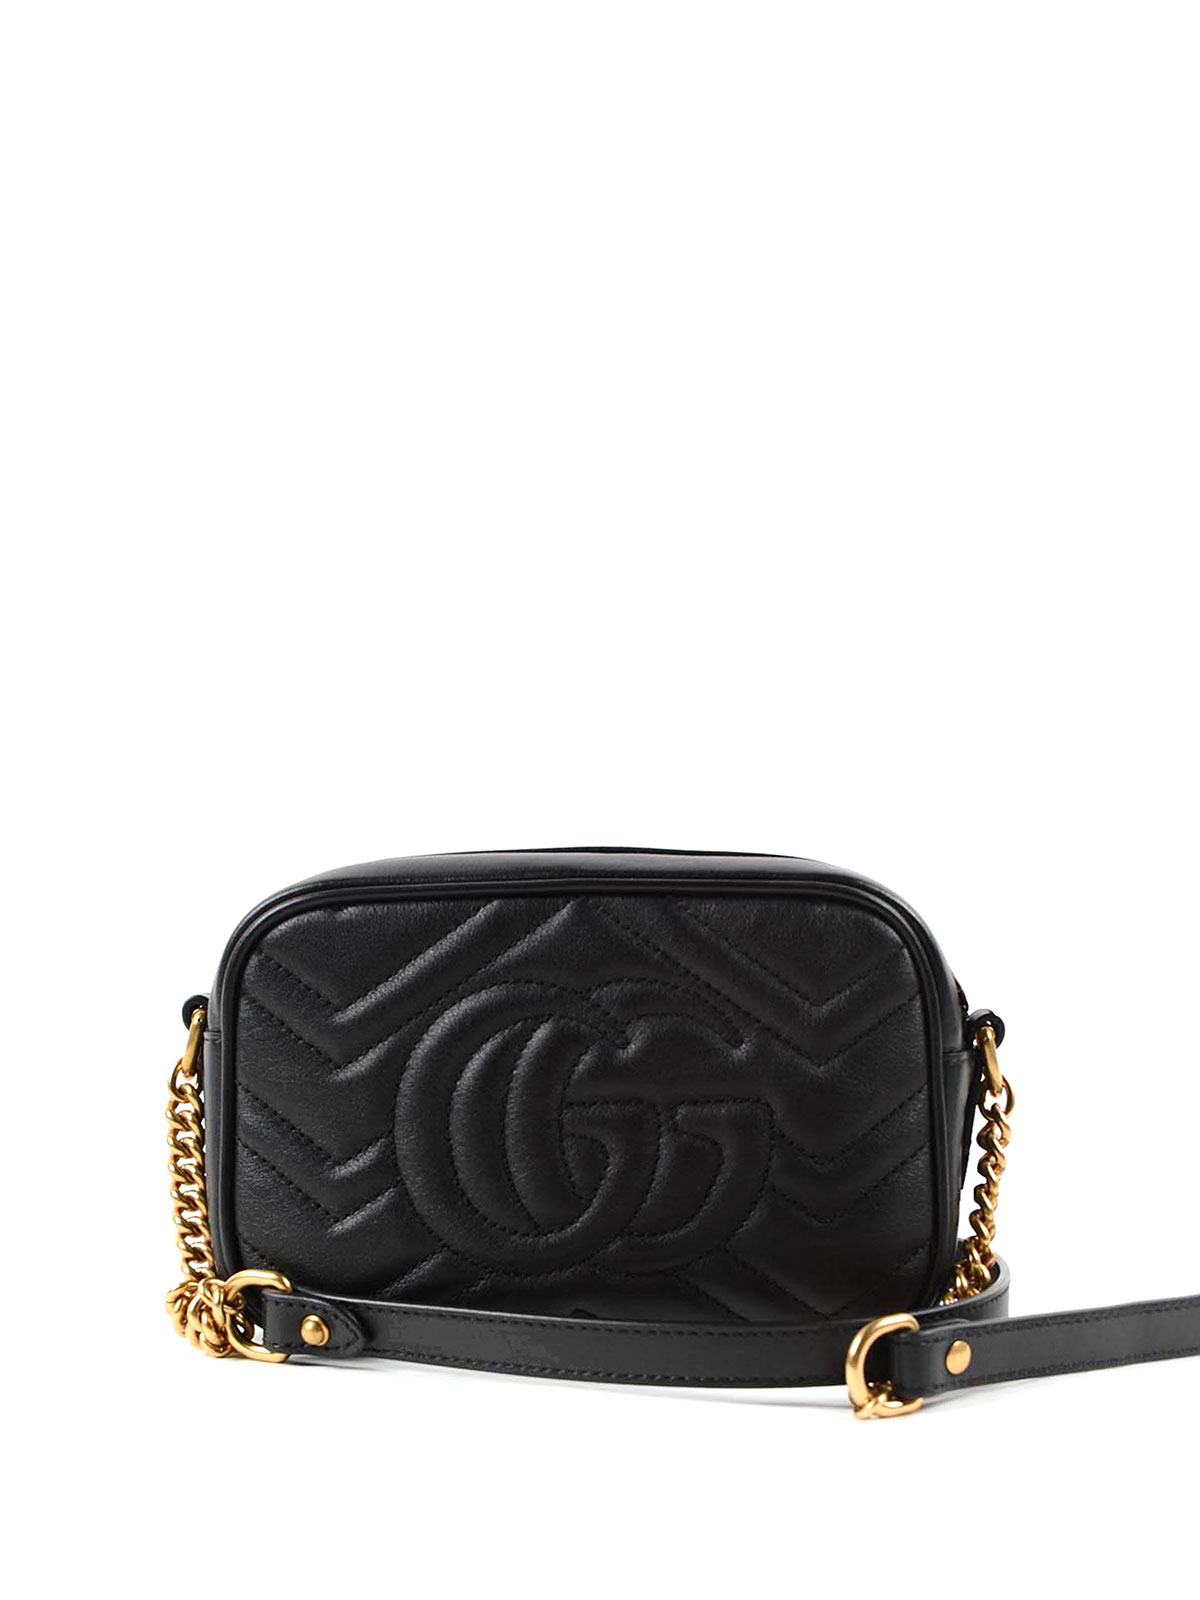 16effcff160471 iKRIX GUCCI: cross body bags - GG Marmont matelassé chain mini bag